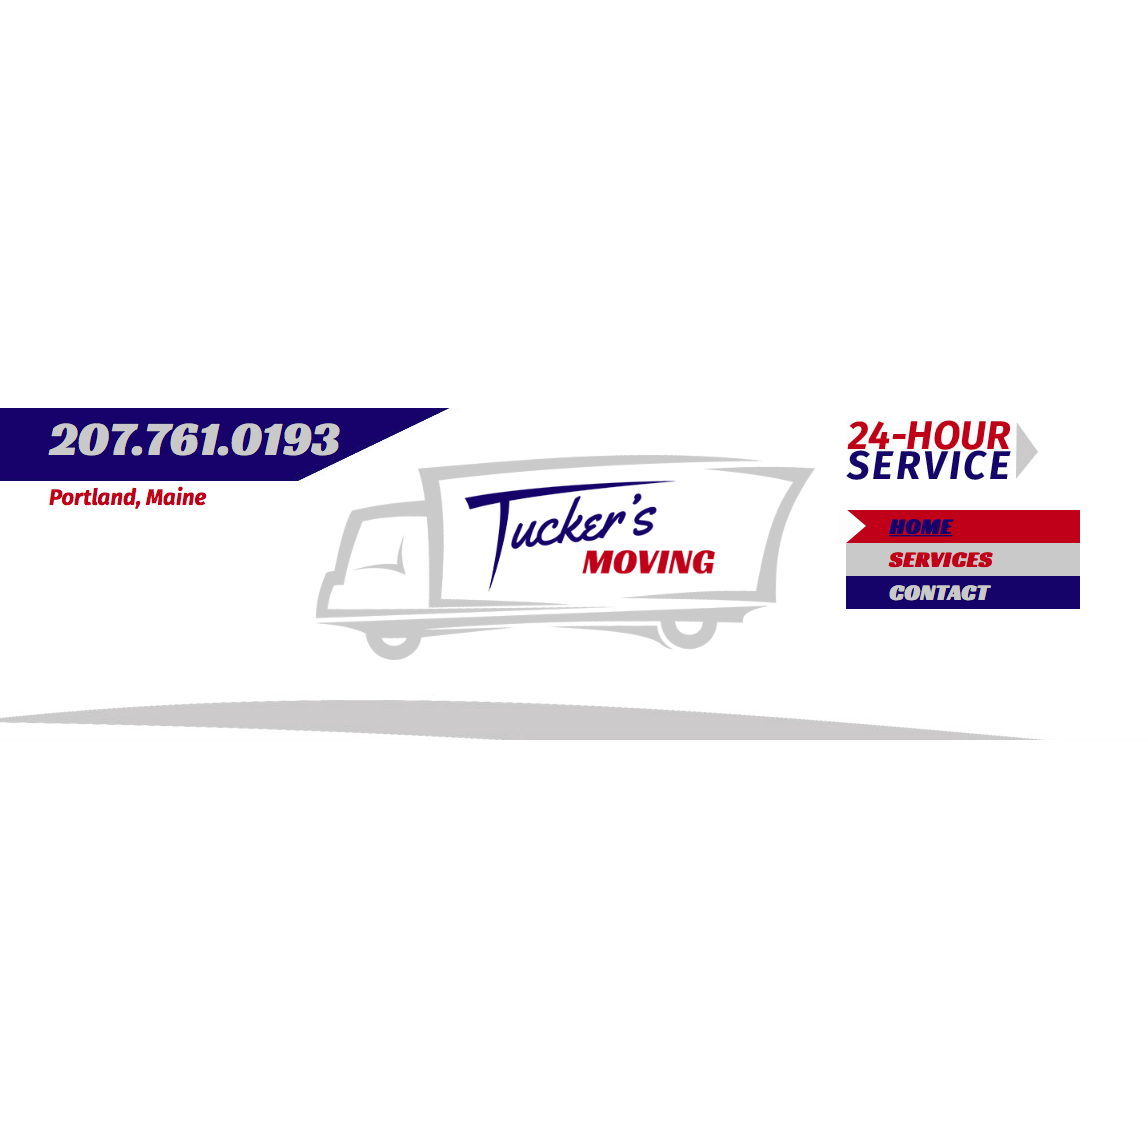 Tuckers Moving - Portland, ME - Movers